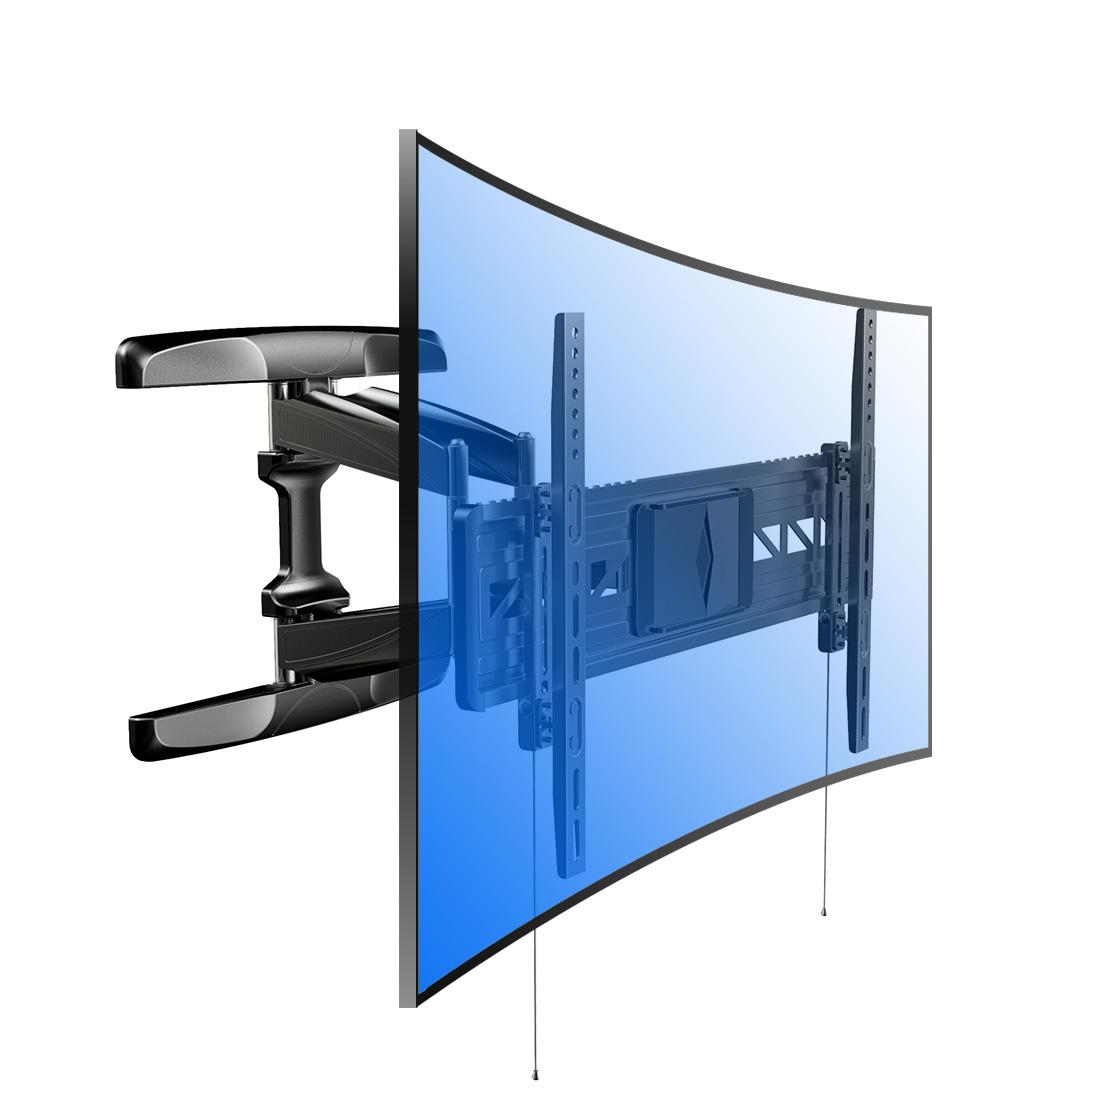 "Loctek R2 Curved Panel UHD HD TV Wall Mount Bracket Articulating Arm Swivel & Tilt for 32""-70"" 4K HD TV Screens"